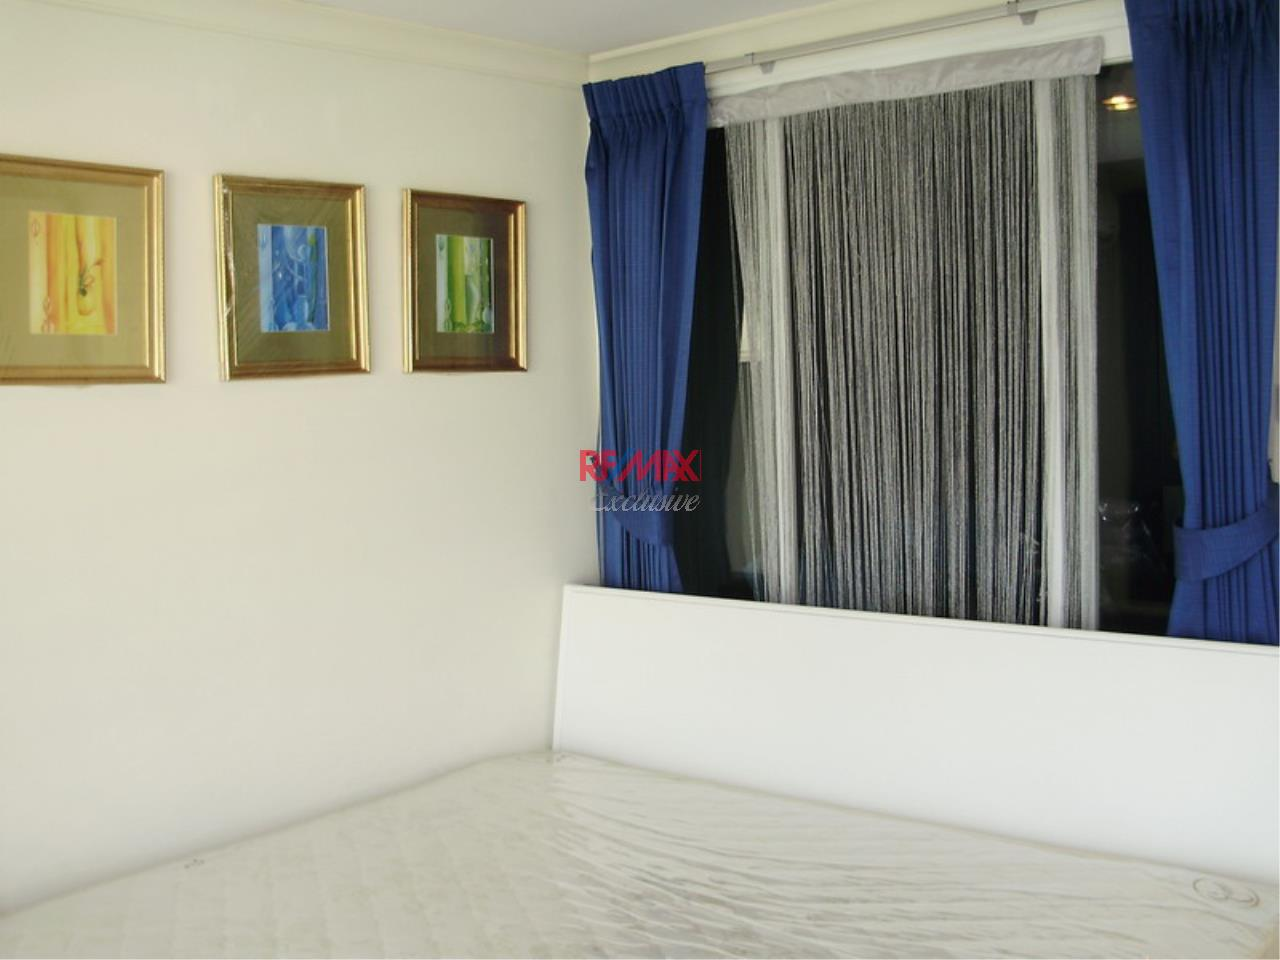 RE/MAX Exclusive Agency's Grand Park View 1 Bedroom nice Decorated for sale 3700000 3